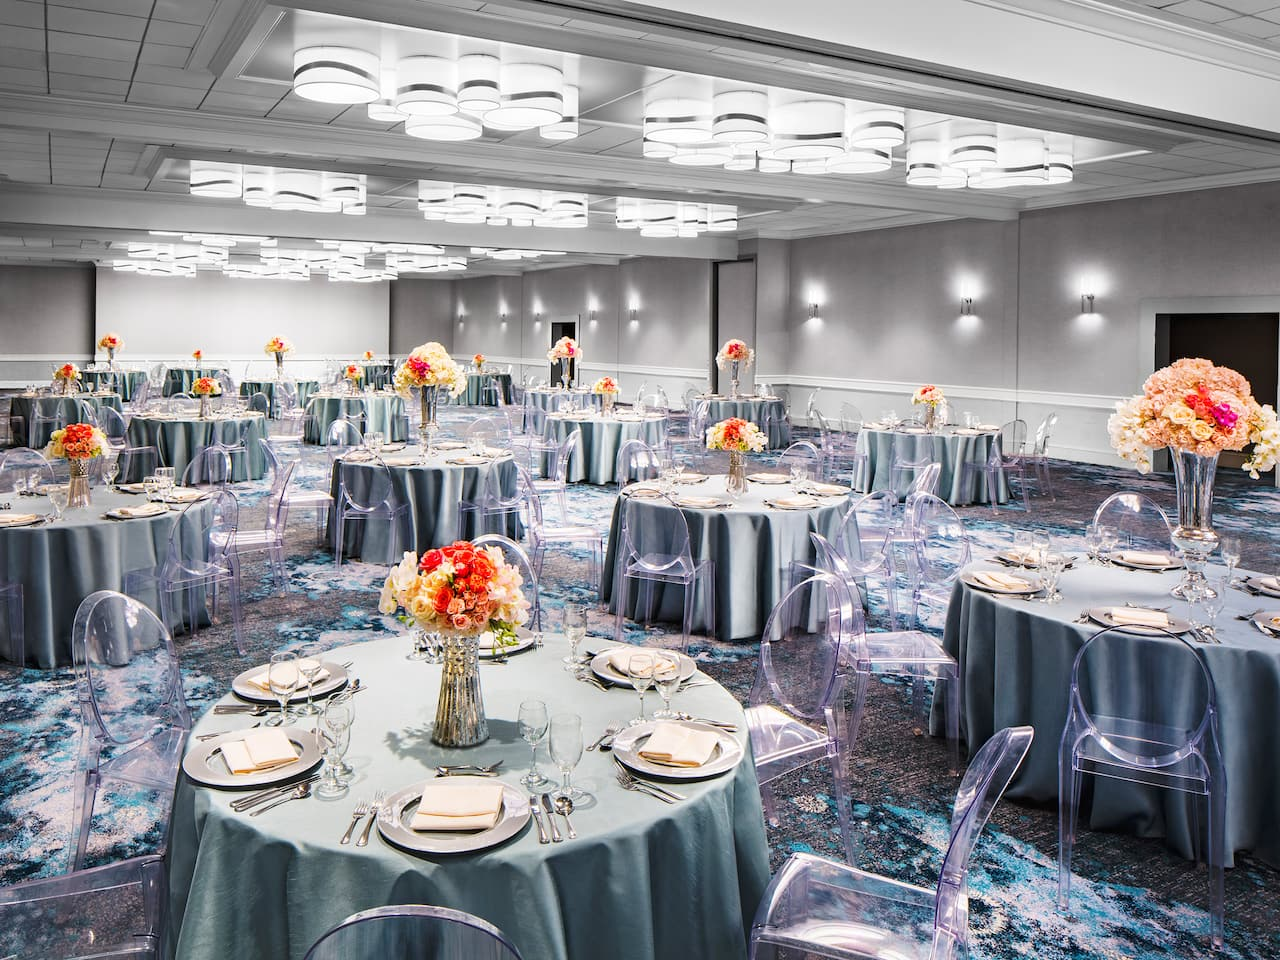 Hyatt Regency Newport Beach Plaza Ballroom